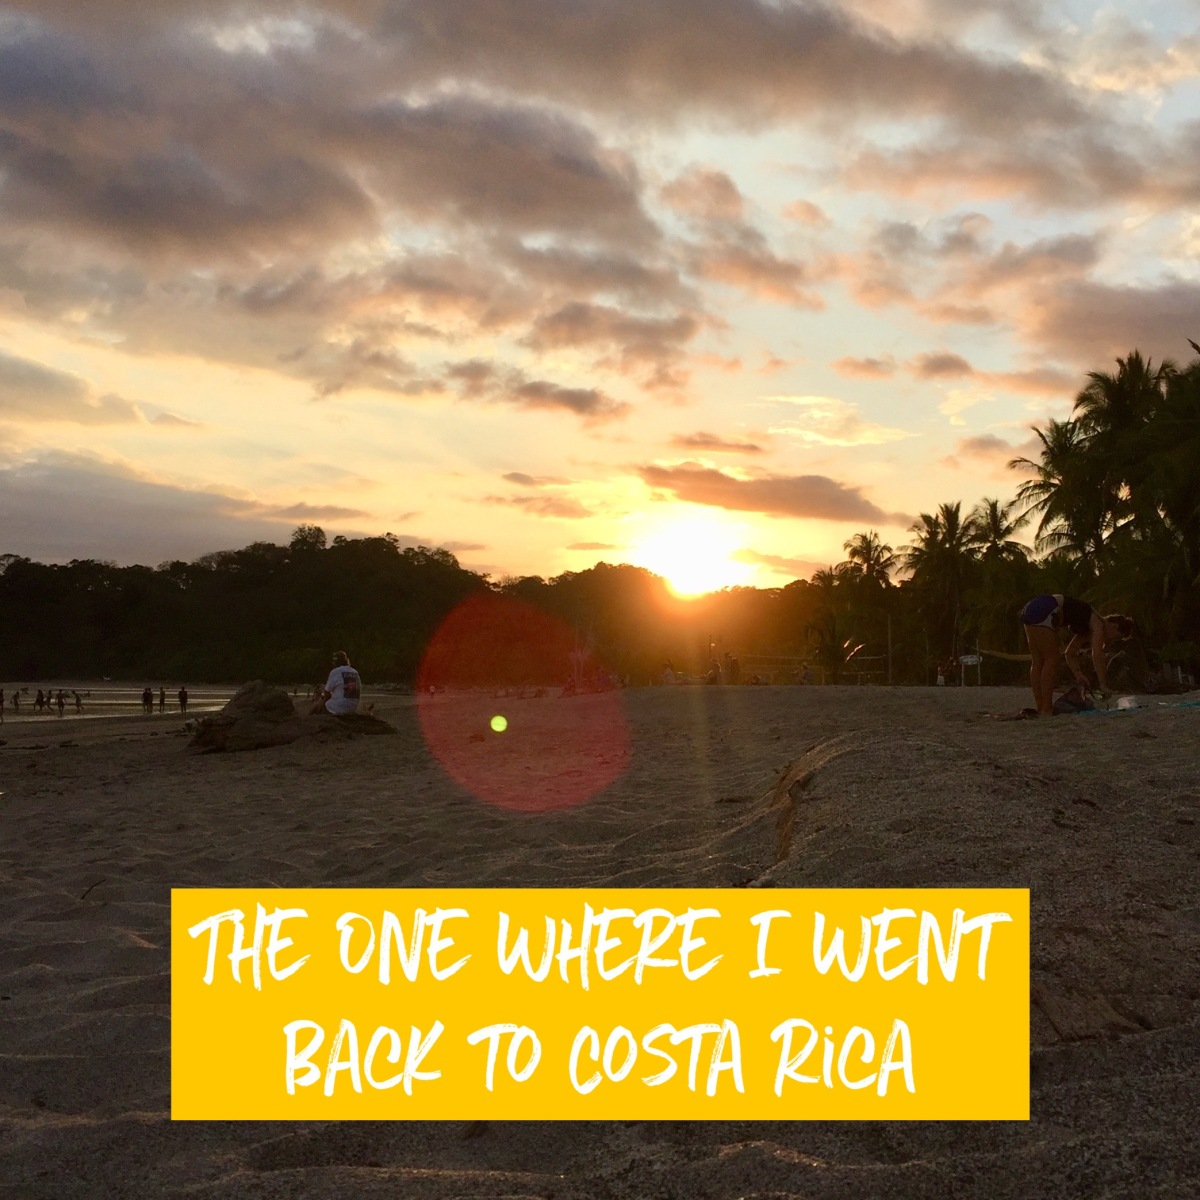 The One Where I Went Back to Costa Rica